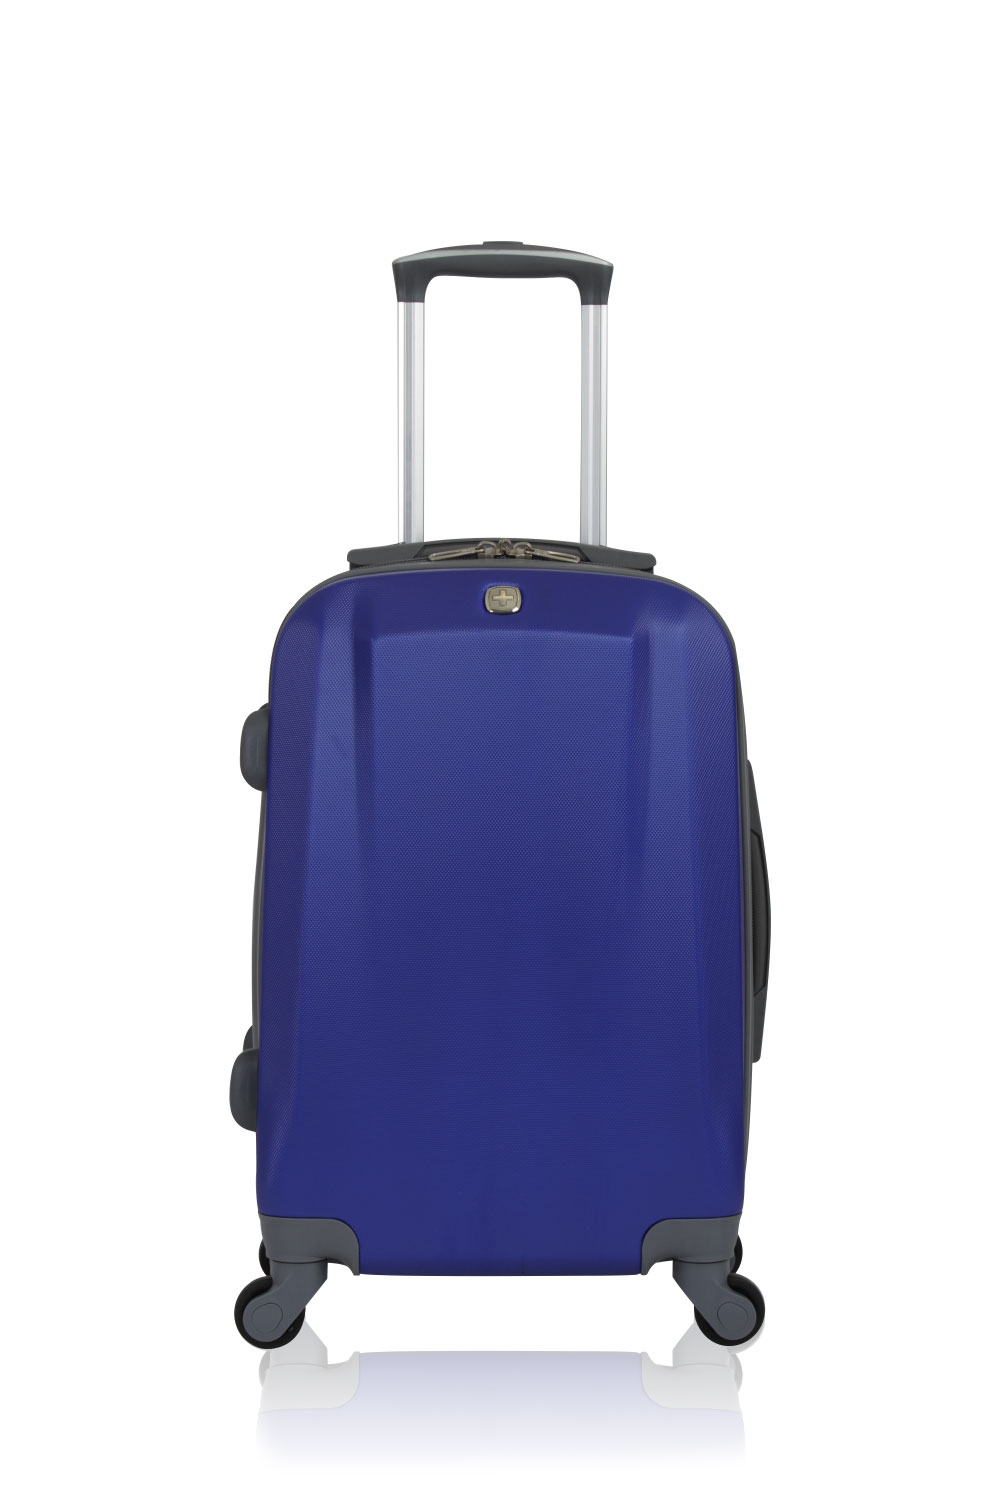 "SWISSGEAR 6072 19"" Hardside Spinner - Blue Luggage"